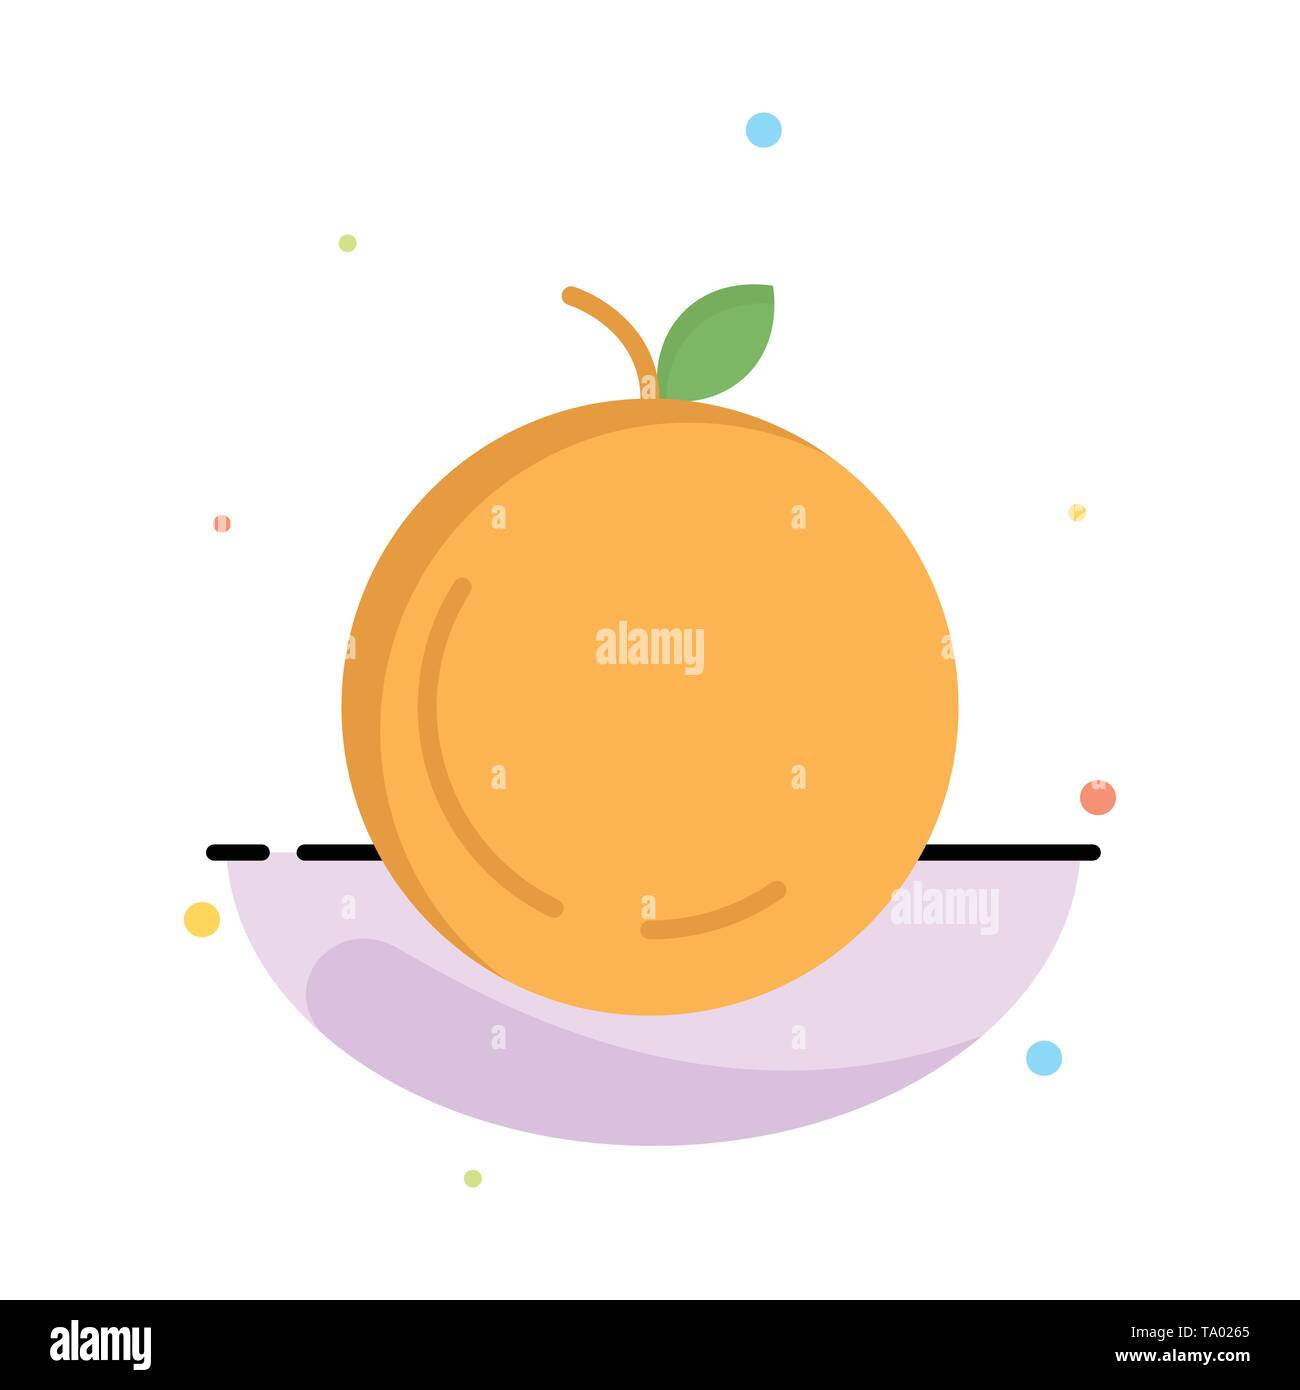 Apple, China, Chinese Abstract Flat Color Icon Template - Stock Image